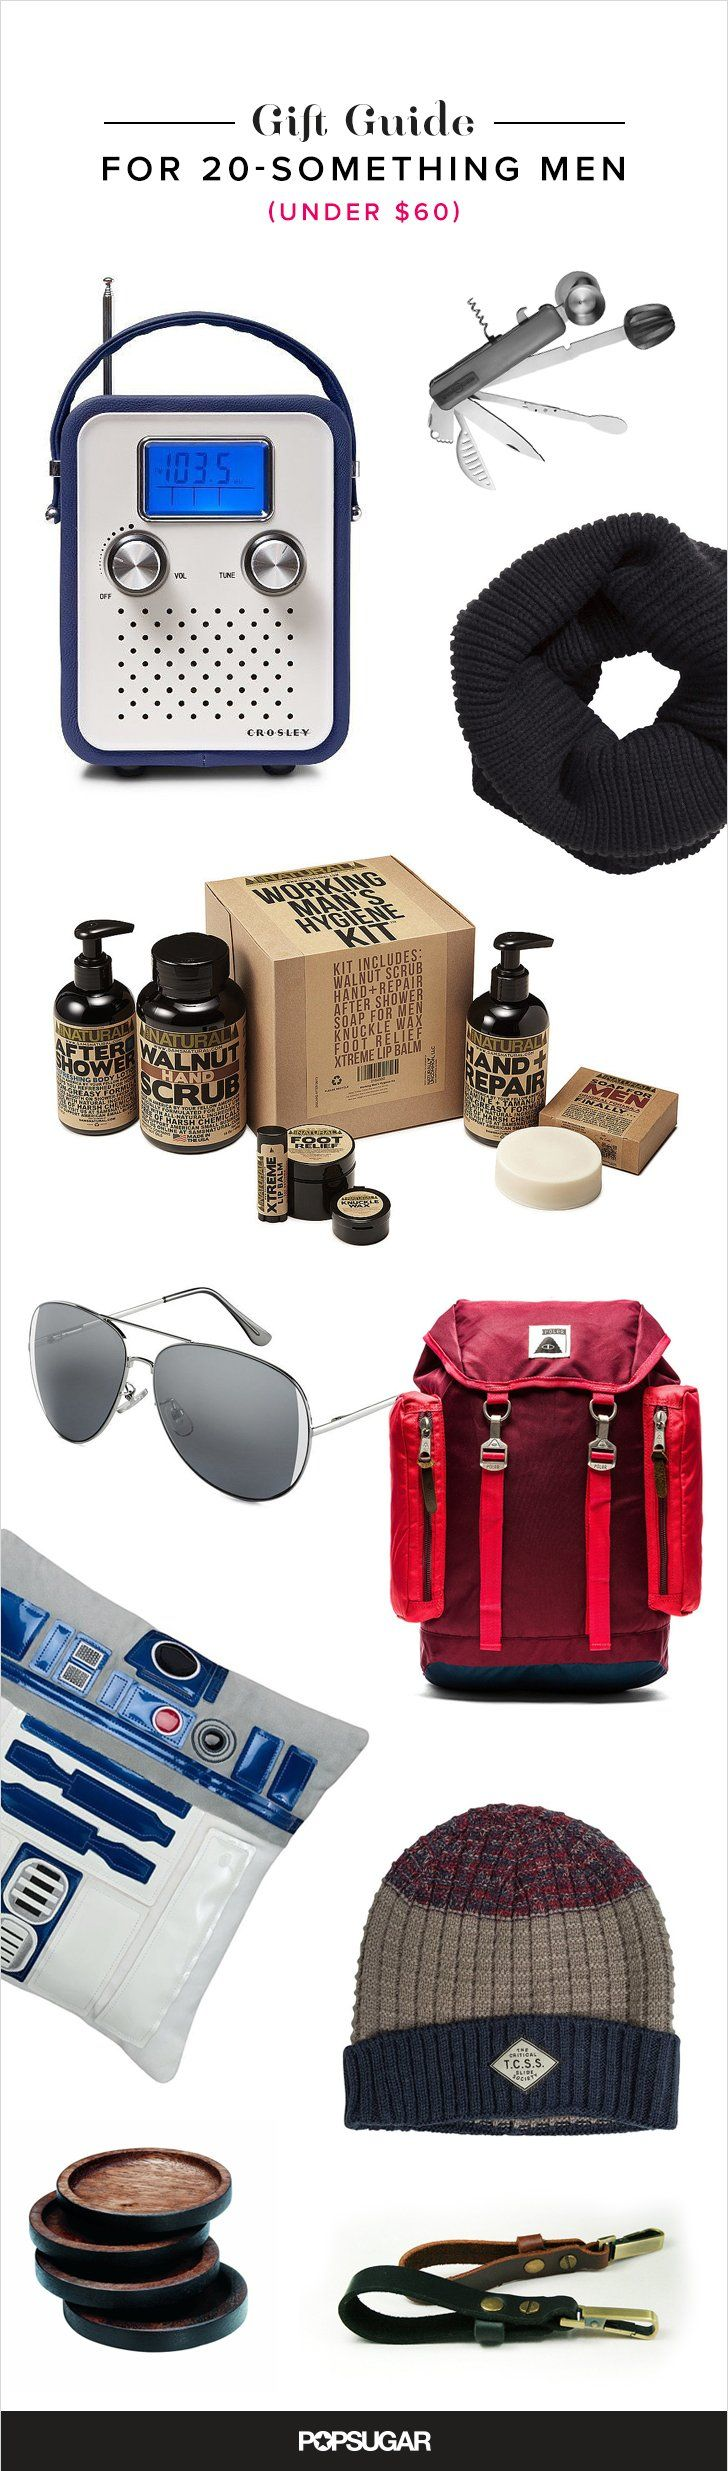 41 Affordable Gifts For Men in Their 20s | Cool Stuff | Pinterest ...